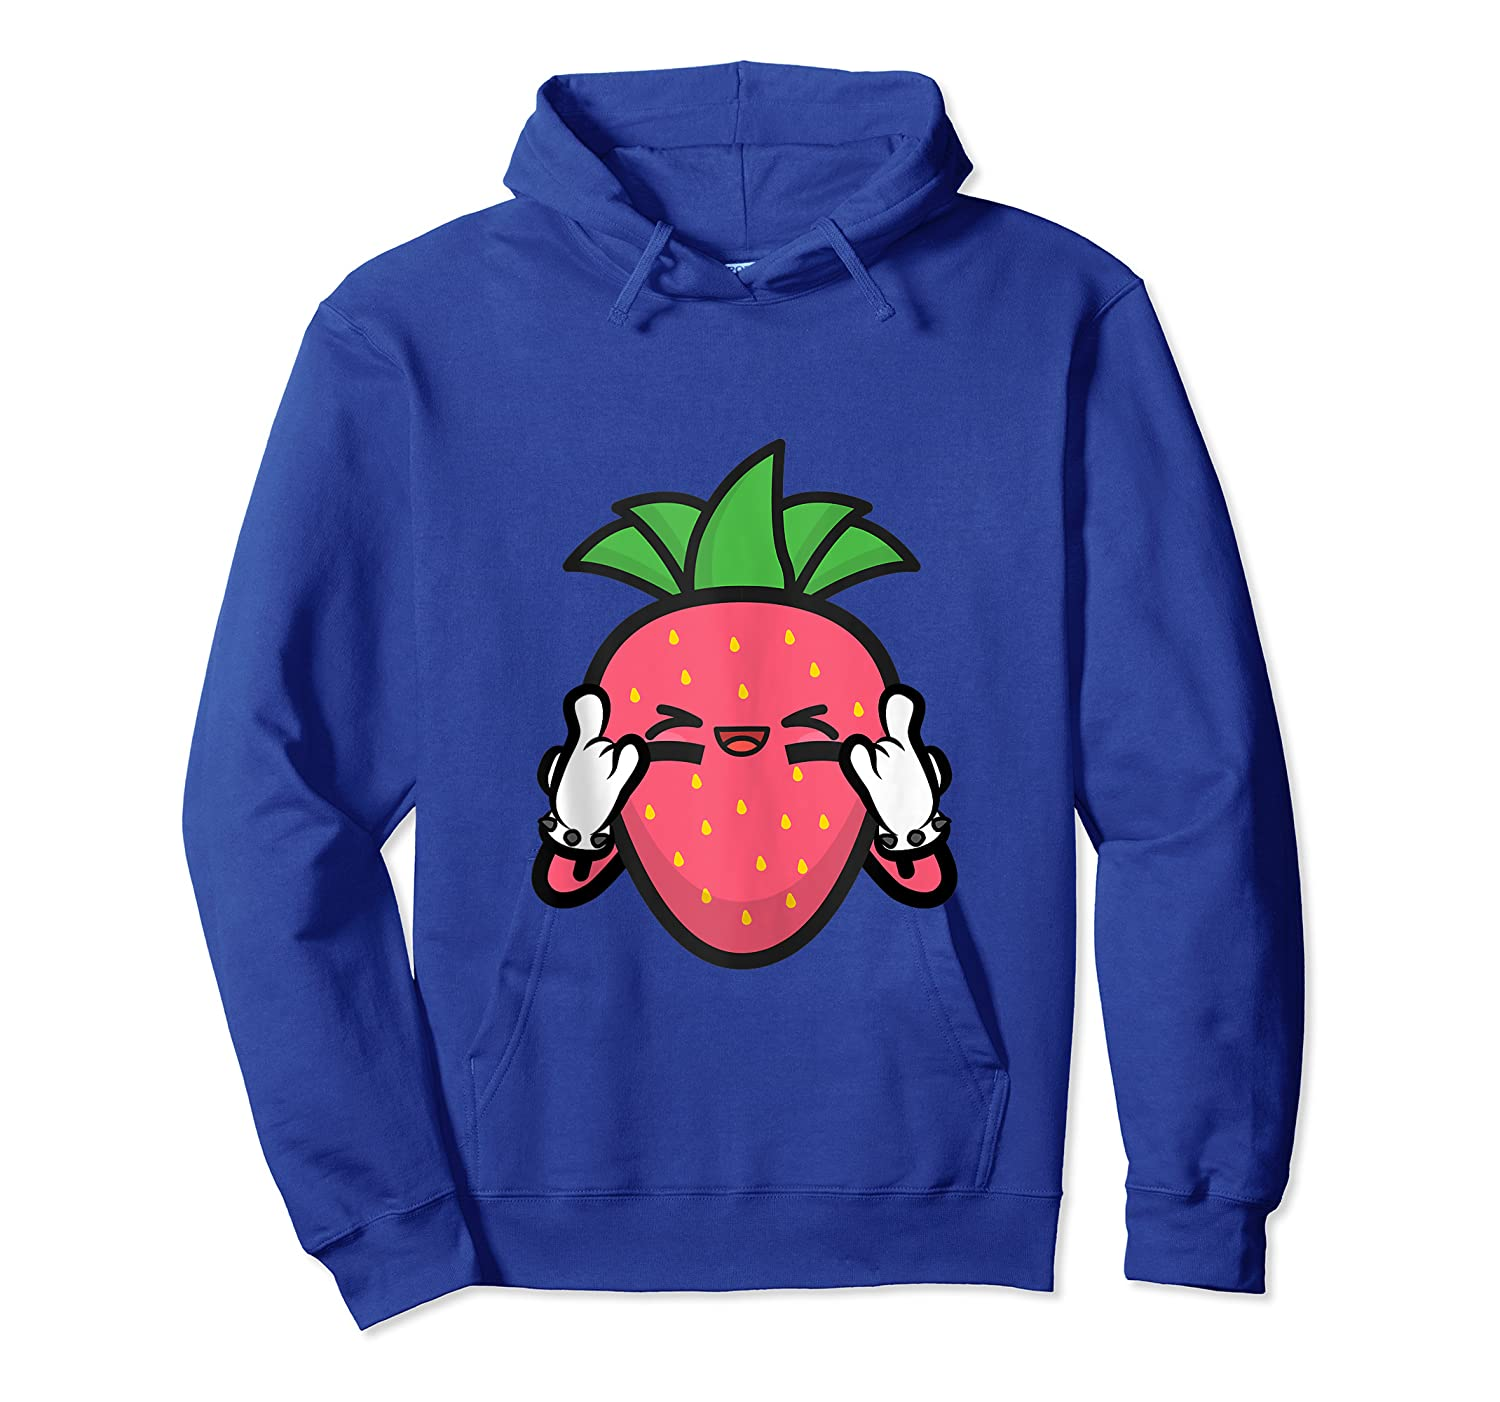 Strawberry Rock Roll Rocker Gift Sign Of Horns Shirts Unisex Pullover Hoodie